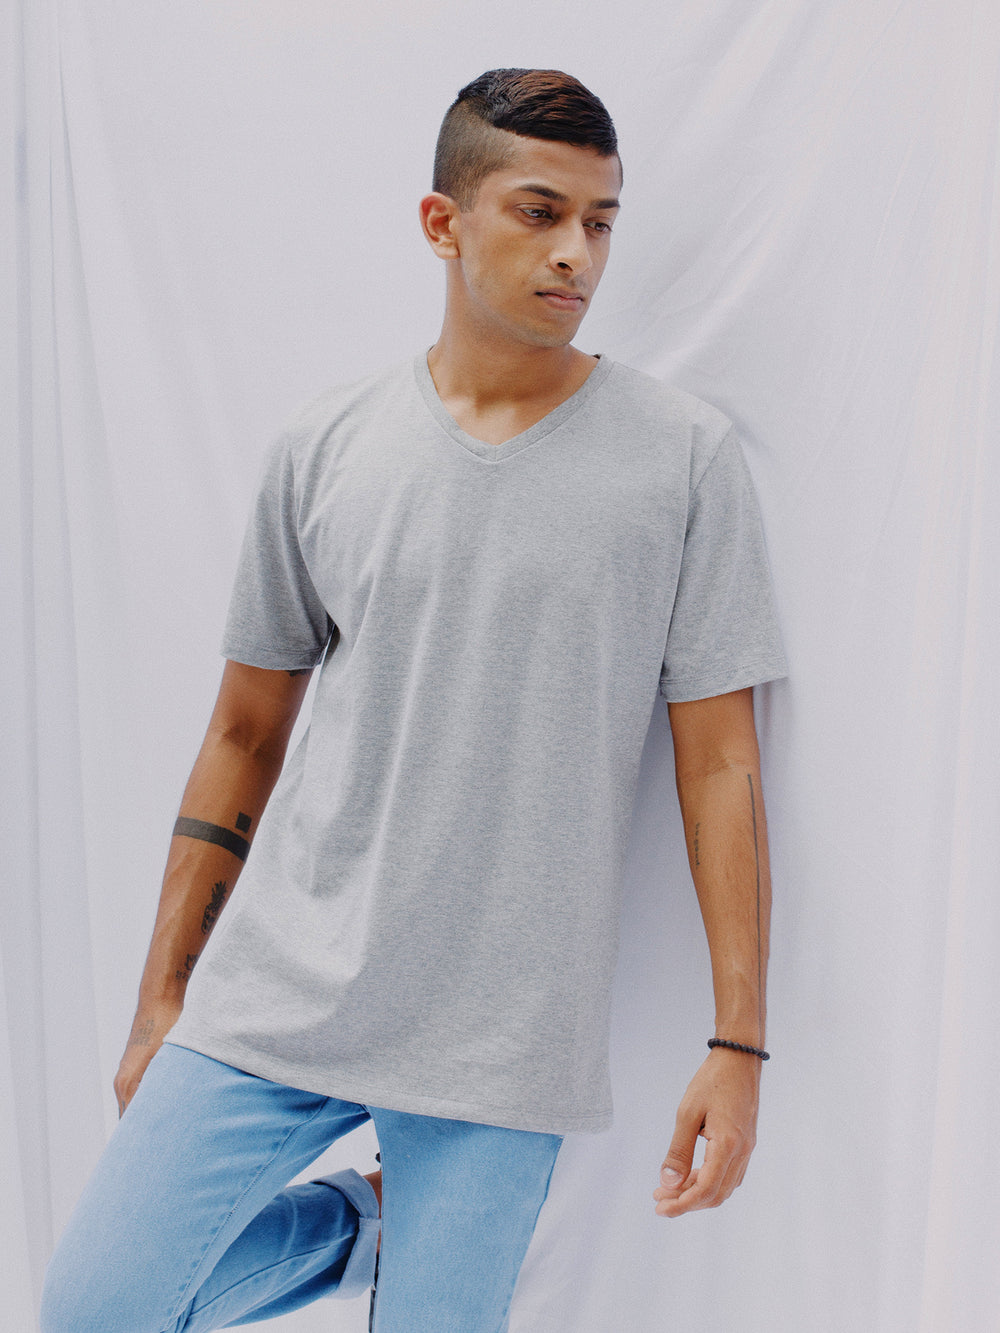 Regular Short Sleeved V Neck T-Shirt